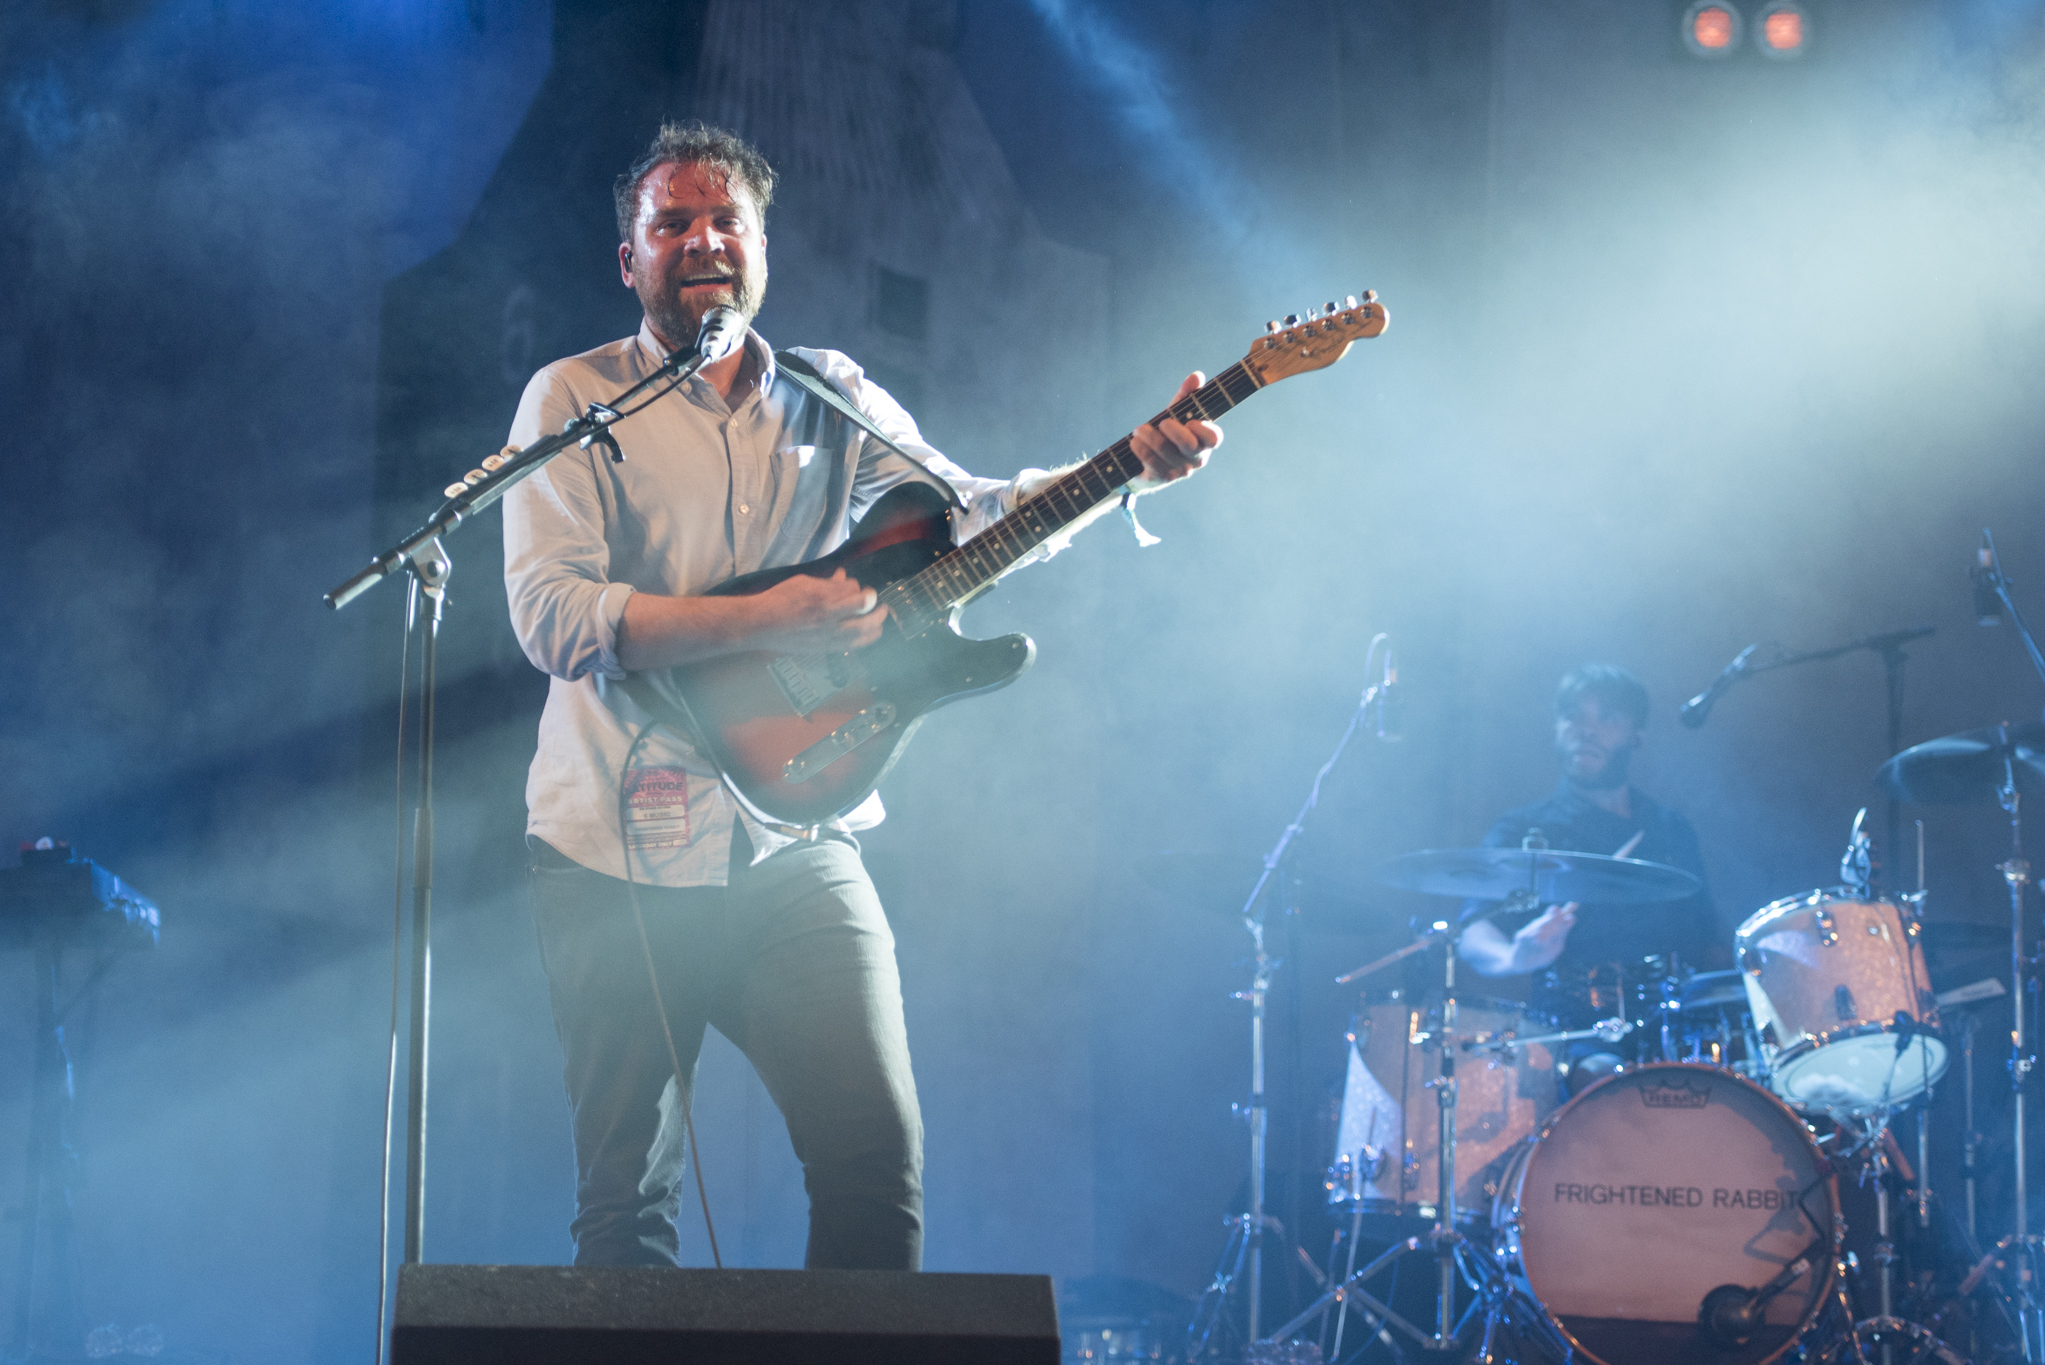 """""""If something feels right, then maybe it's right. That's what this album proved"""" - Frightened Rabbit's Scott Hutchison talks 10 years of 'The Midnight Organ Fight'"""